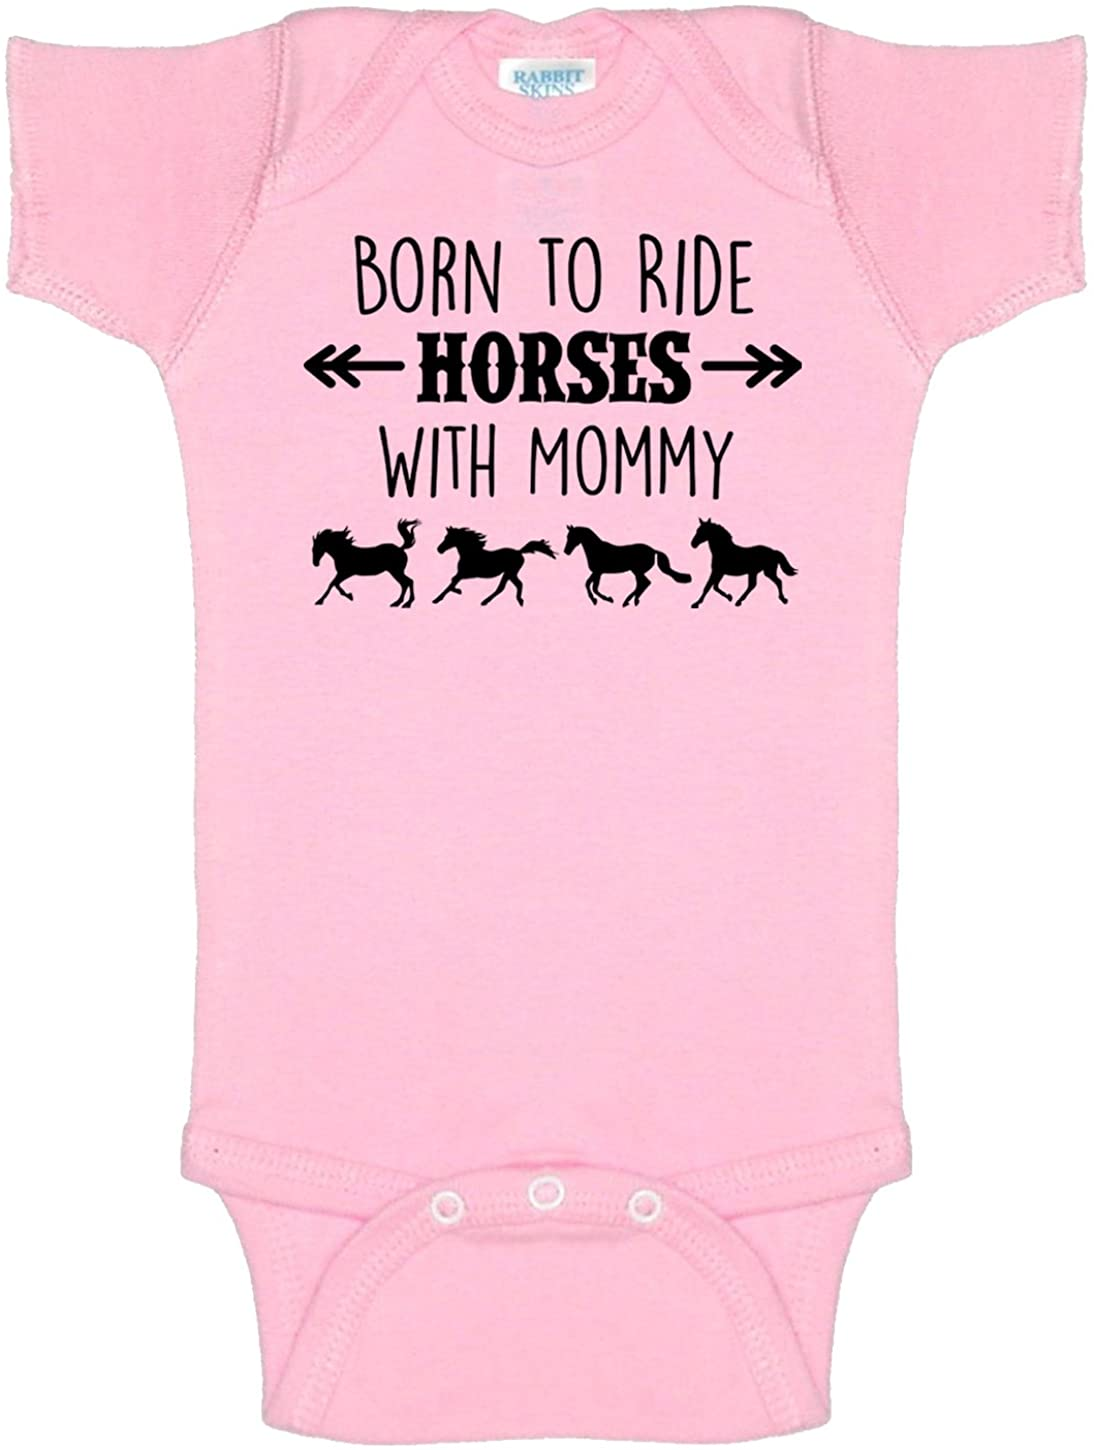 Born to Ride Horses with Mommy, Short Sleeve Horse Bodysuit, Baby Boy or Girl